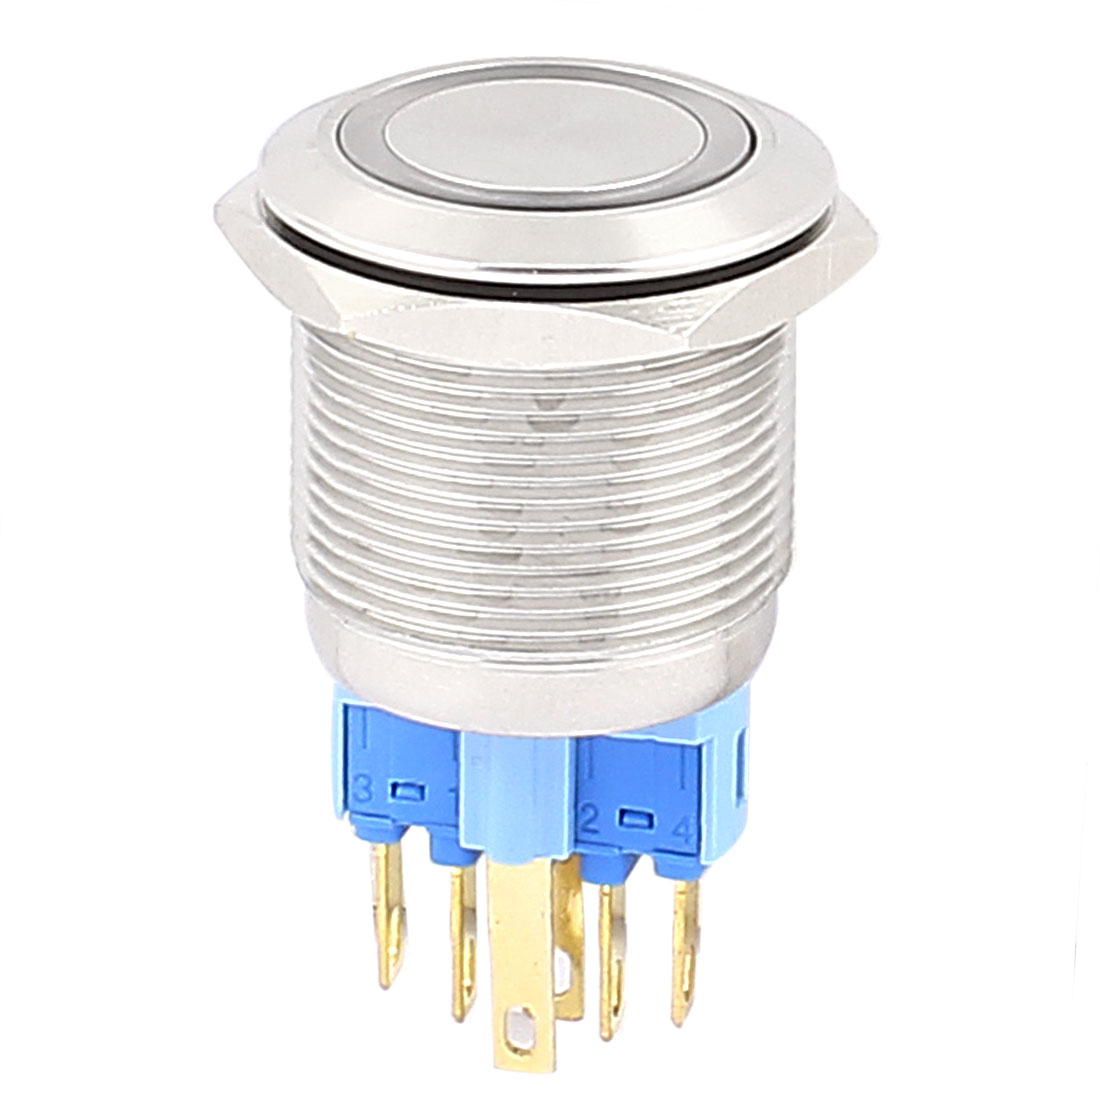 12V 22mm Thread Dia White LED Angle Eyes Latching Metal Pushbutton Switch